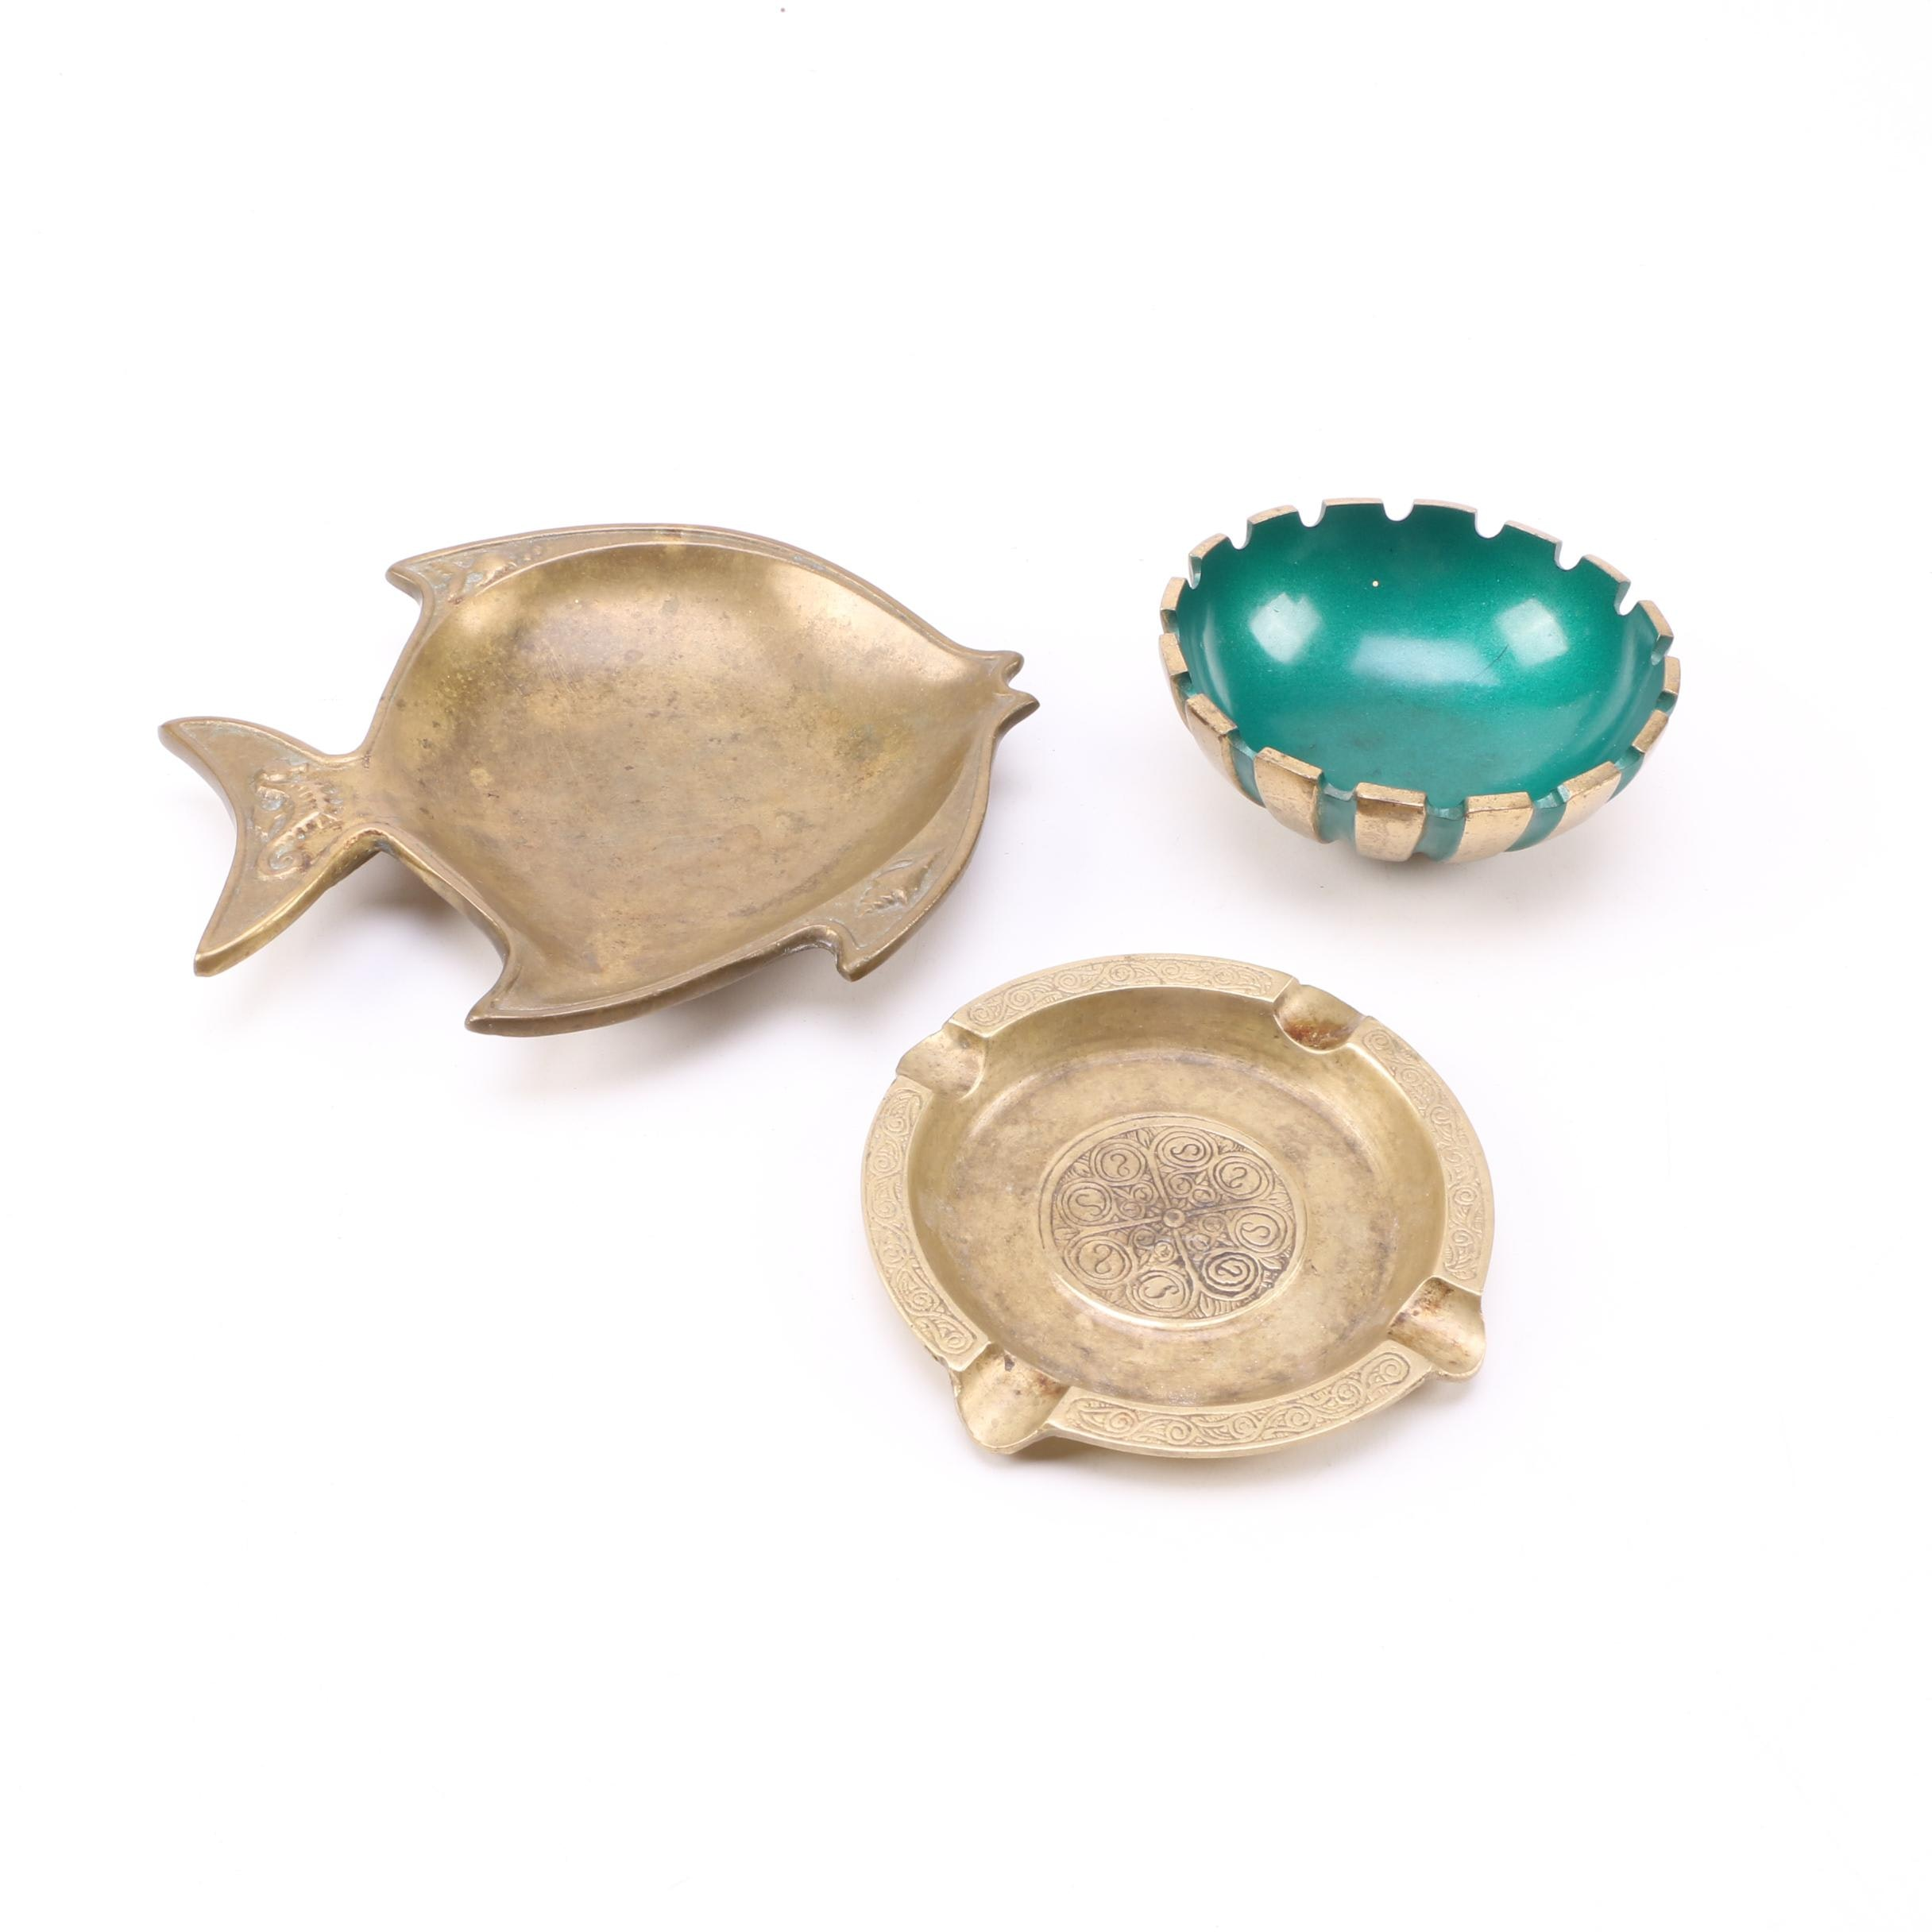 Decorative Brass Dishes and Ash Trays